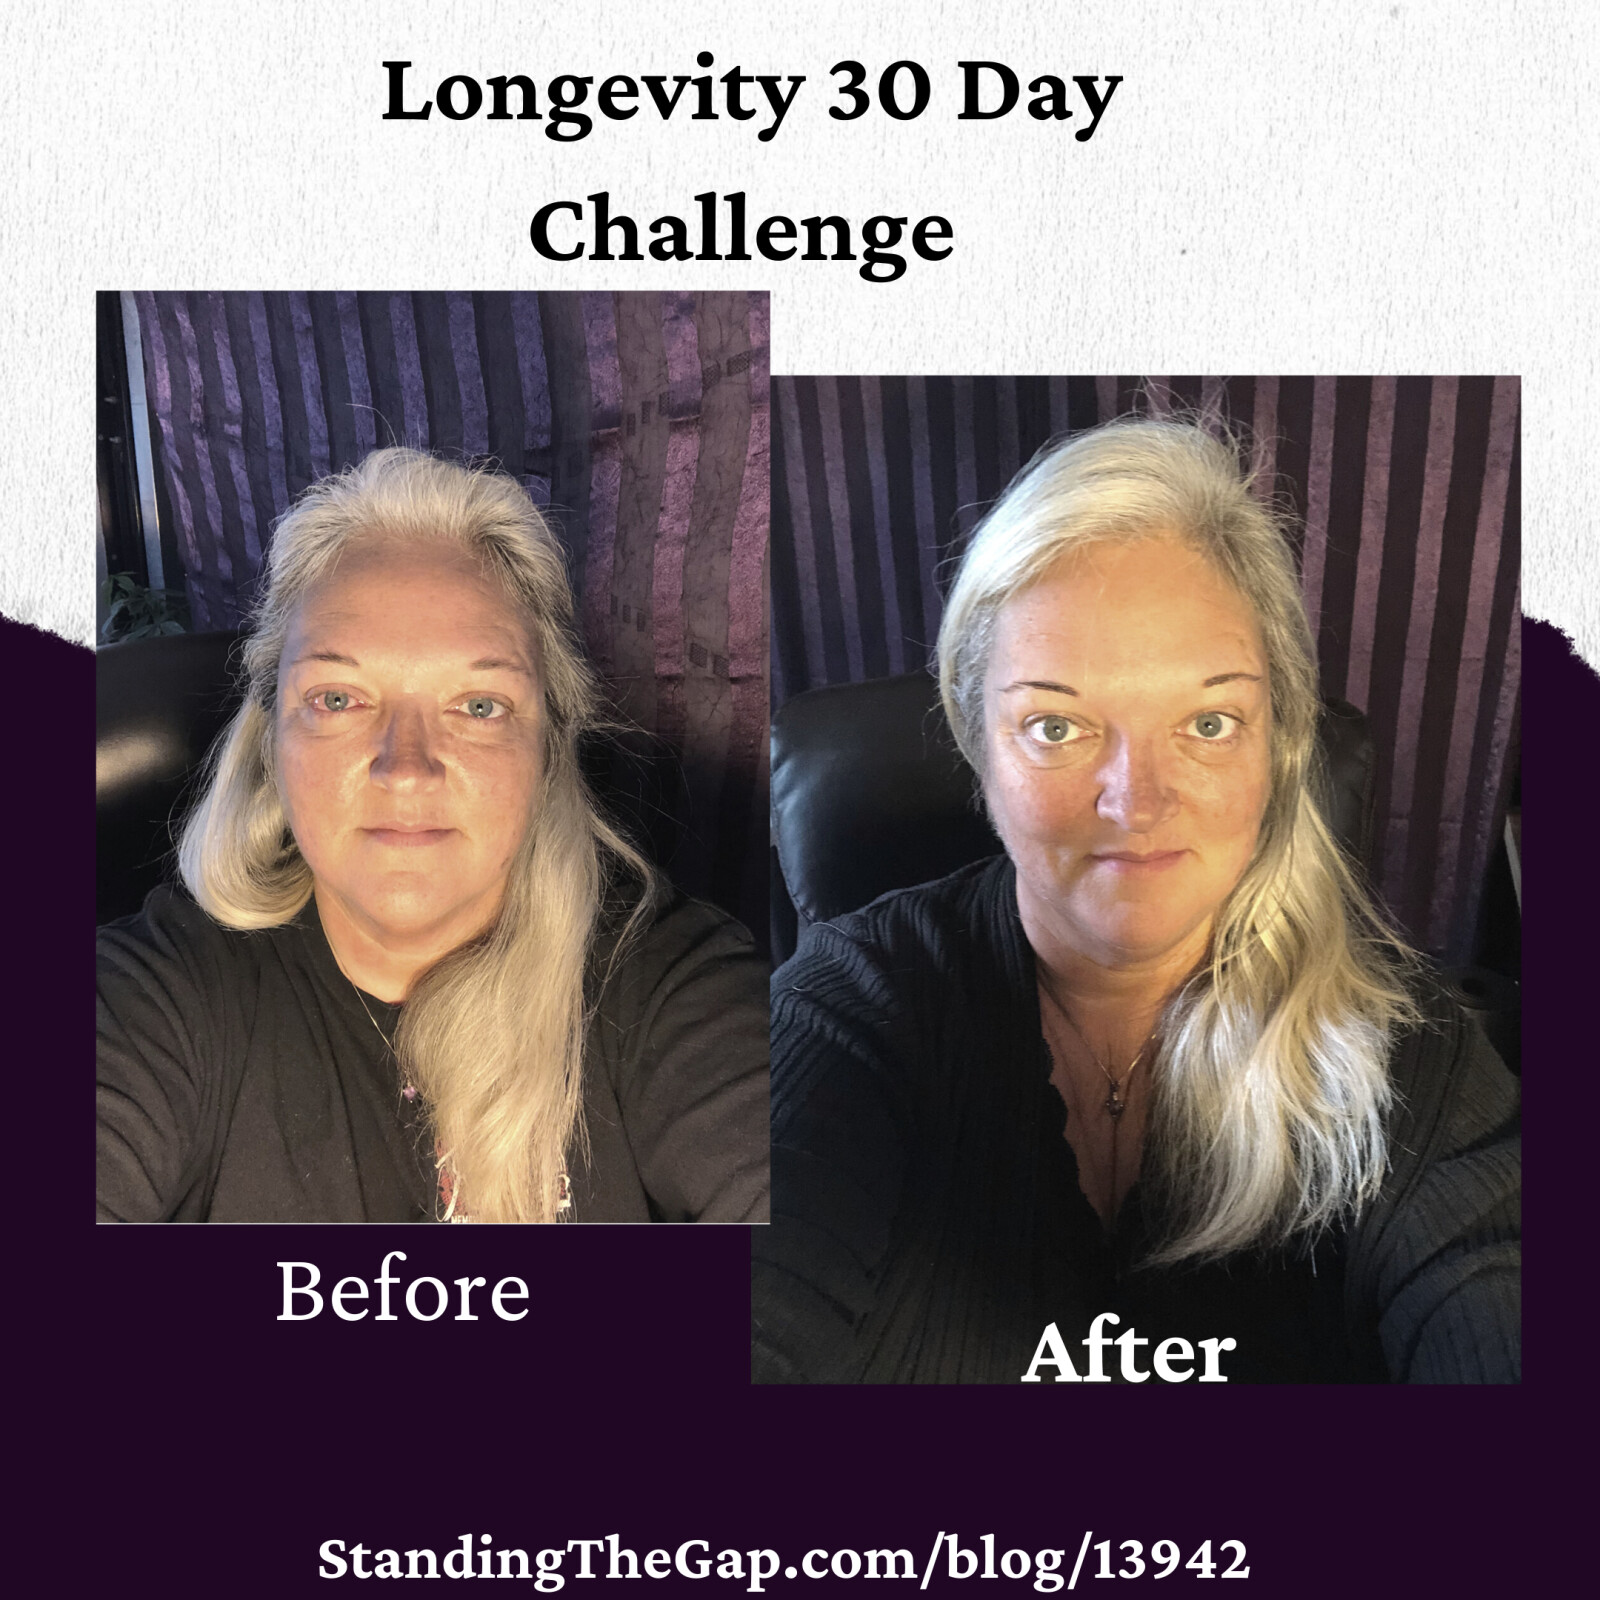 Wow! Longevity 30 Day Challenge Completed!!!